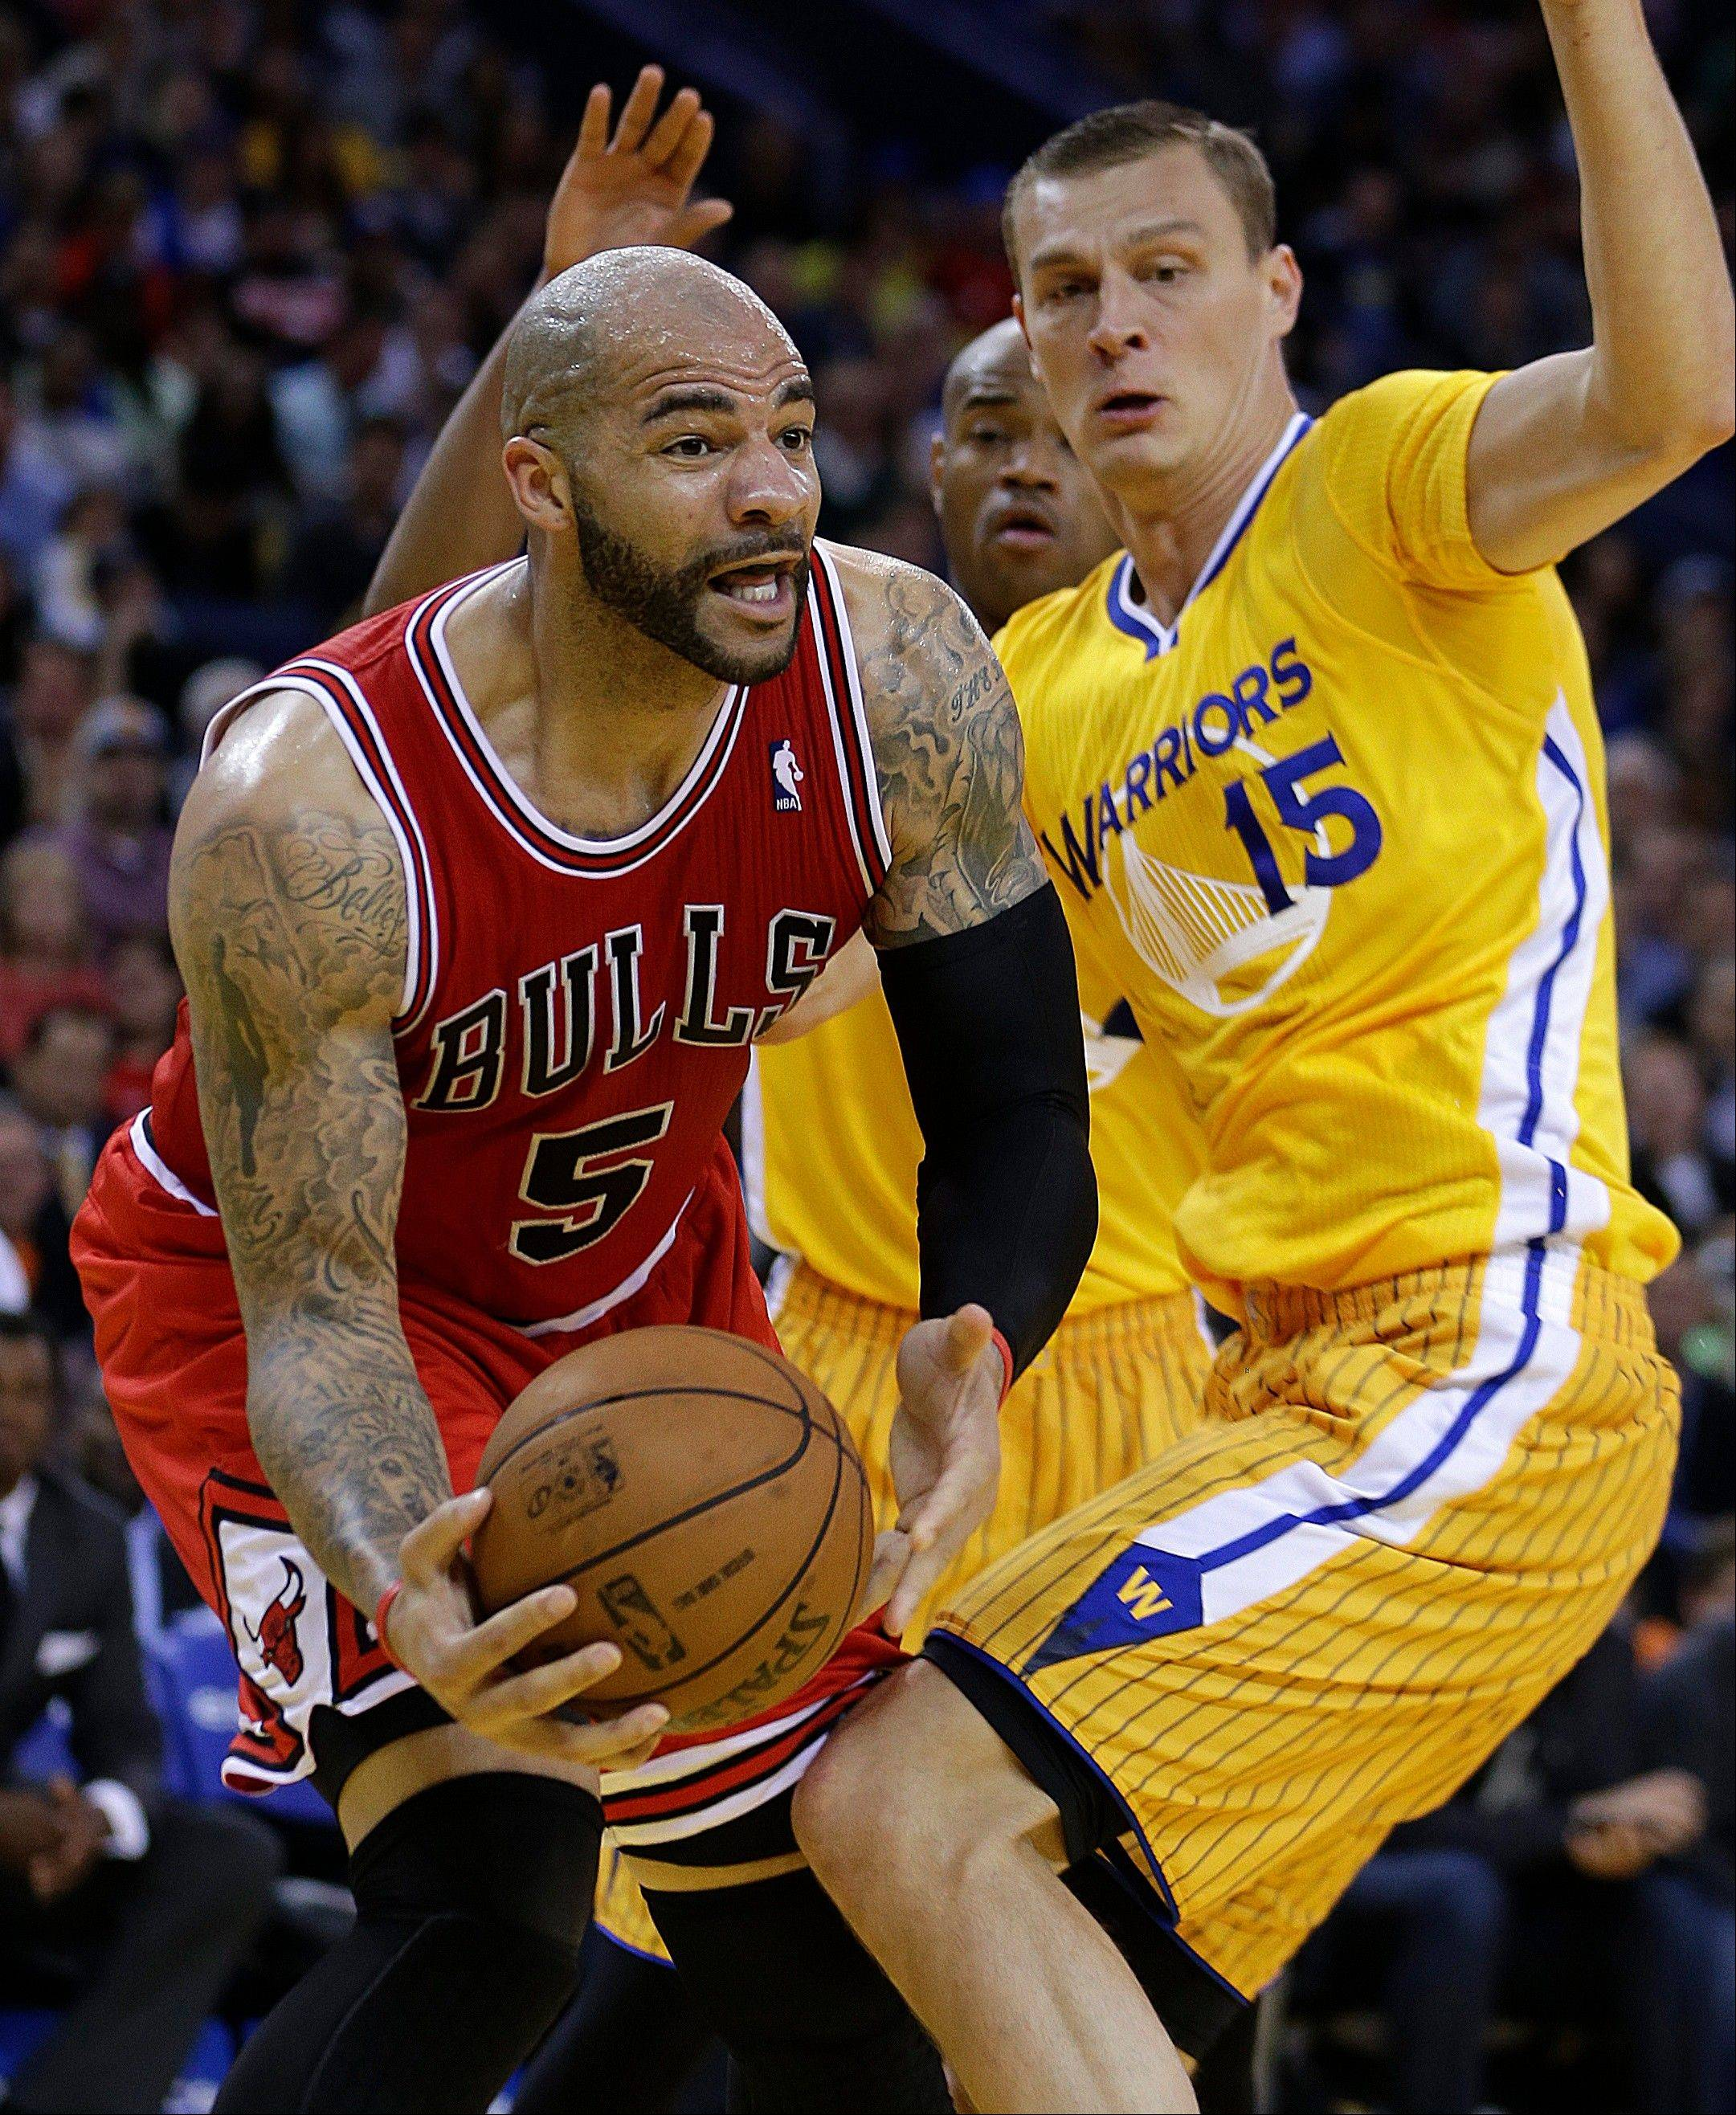 The Bulls' Carlos Boozer looks to pass around the Warriors' Andris Biedrins during Friday's victory at Golden State.